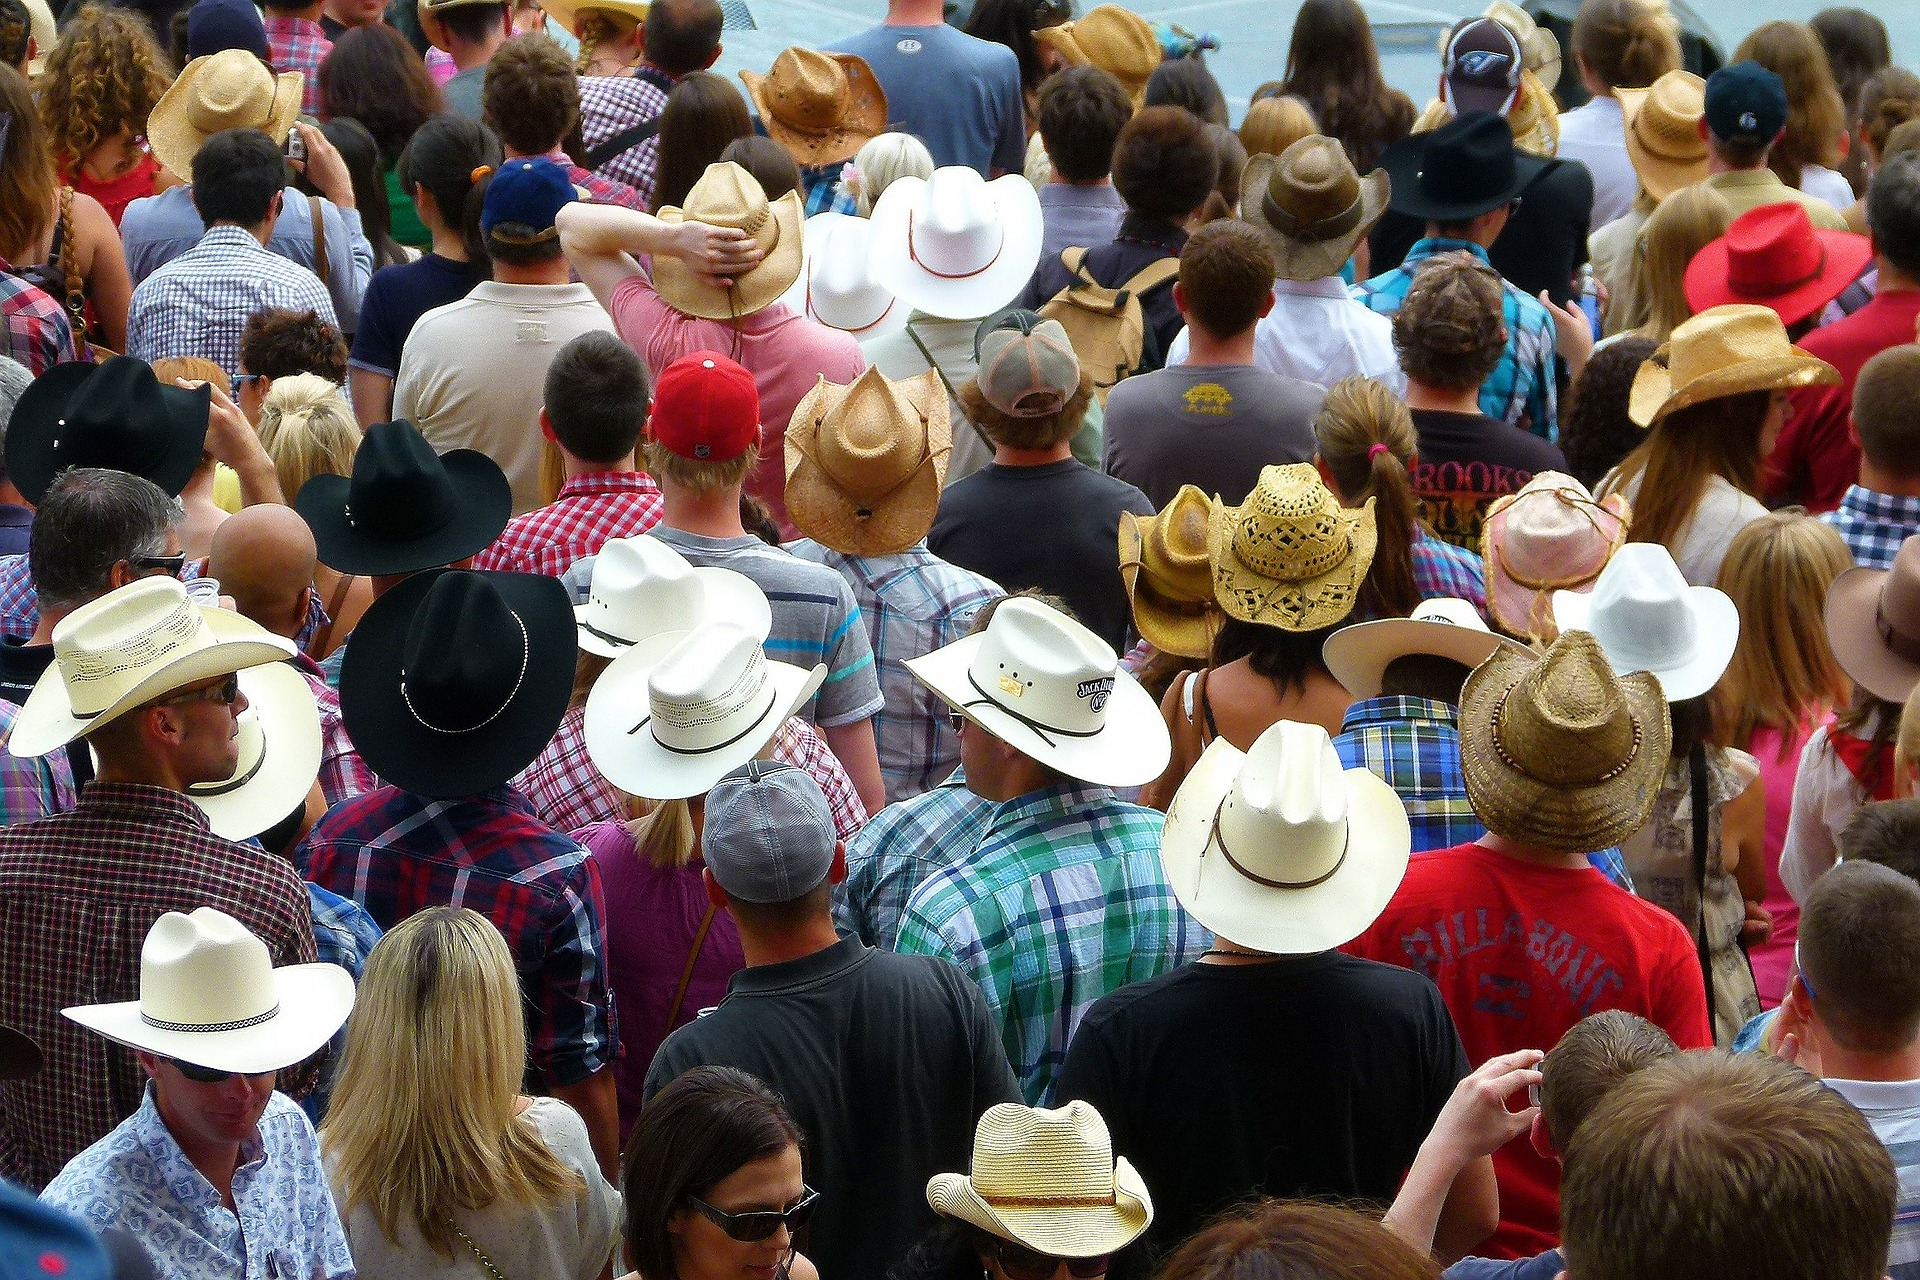 How To Make The Most Of Your Calgary Stampede Trip